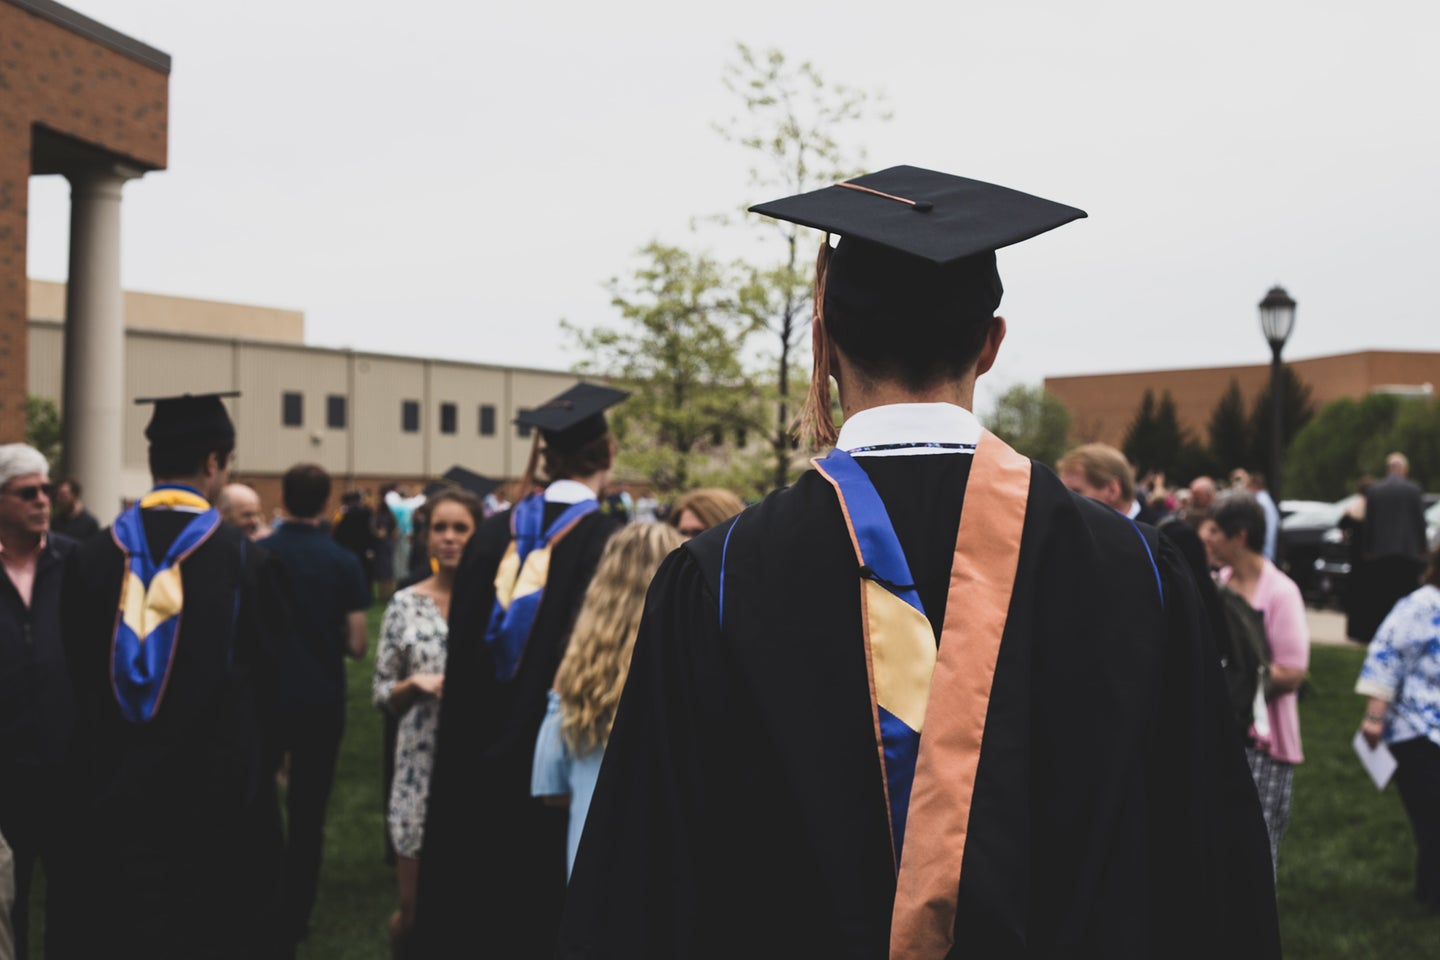 people at a graduation ceremony wearing caps and gowns outside